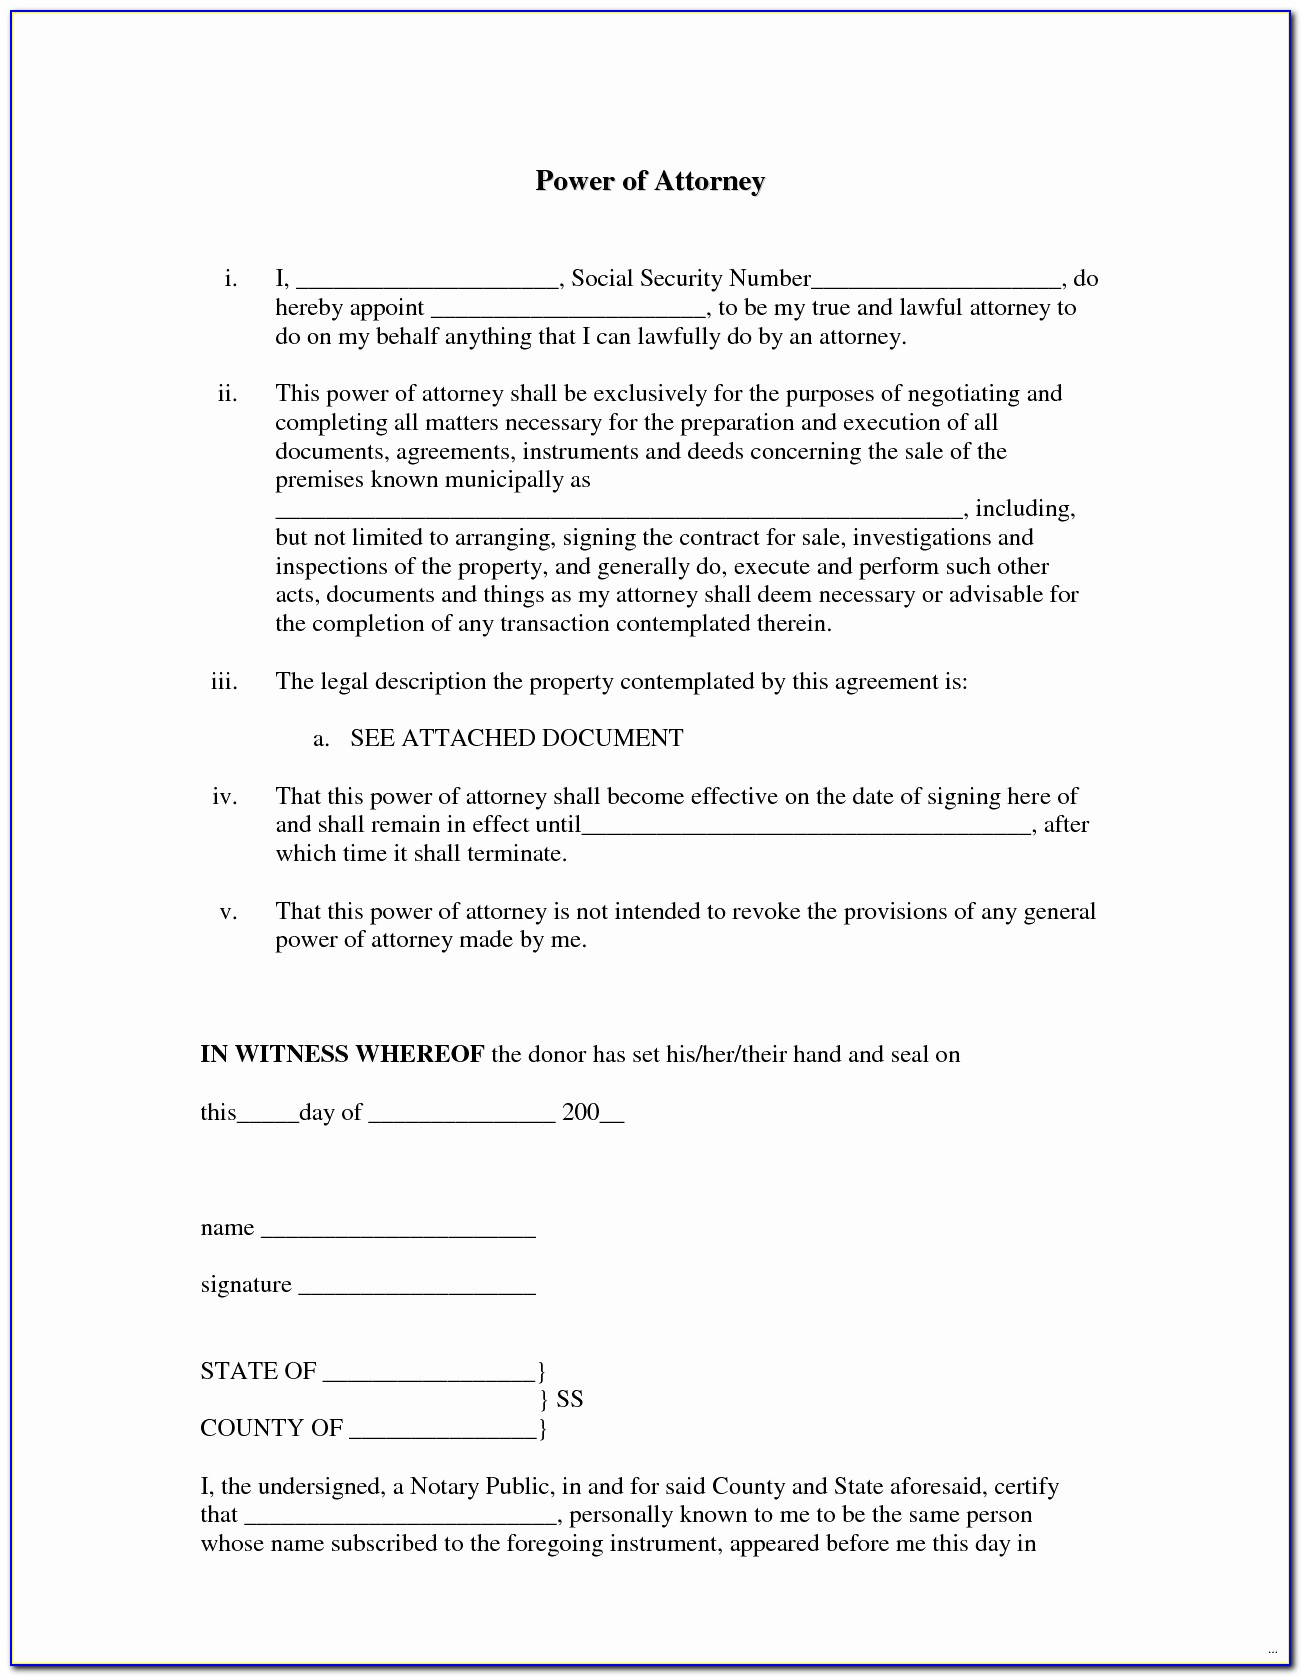 Limited Power Of Attorney Form Ohio Inspirational Limited Power Attorney Form Ohio Inspirational British Columbia